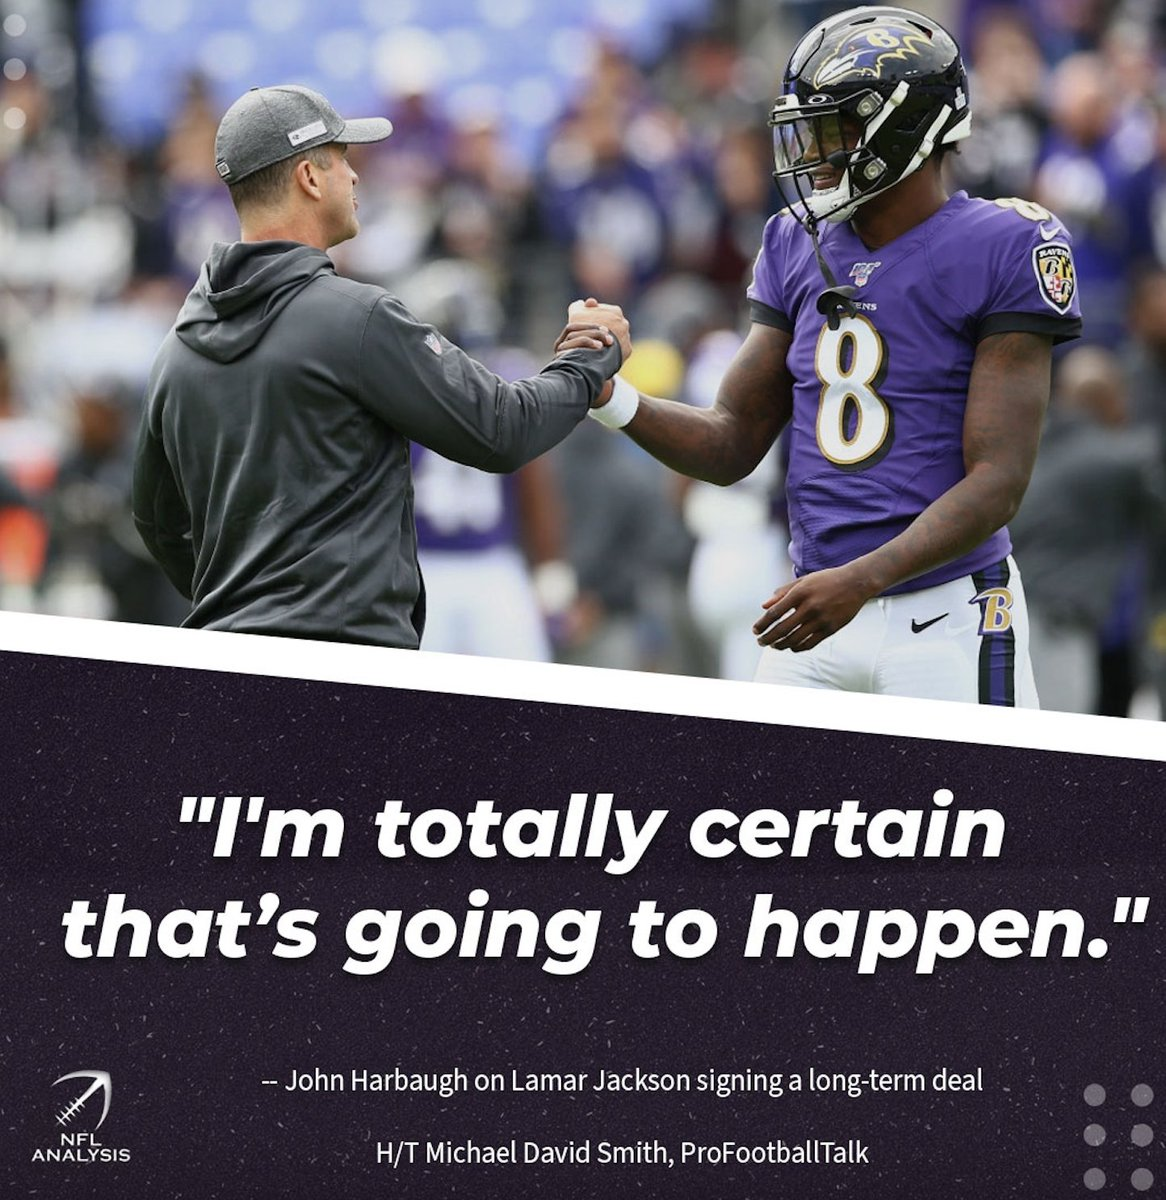 """Harbaugh: """"Absolutely, we want Lamar to sign a long-term deal and be with us.""""  #Ravens #RavensFlock"""